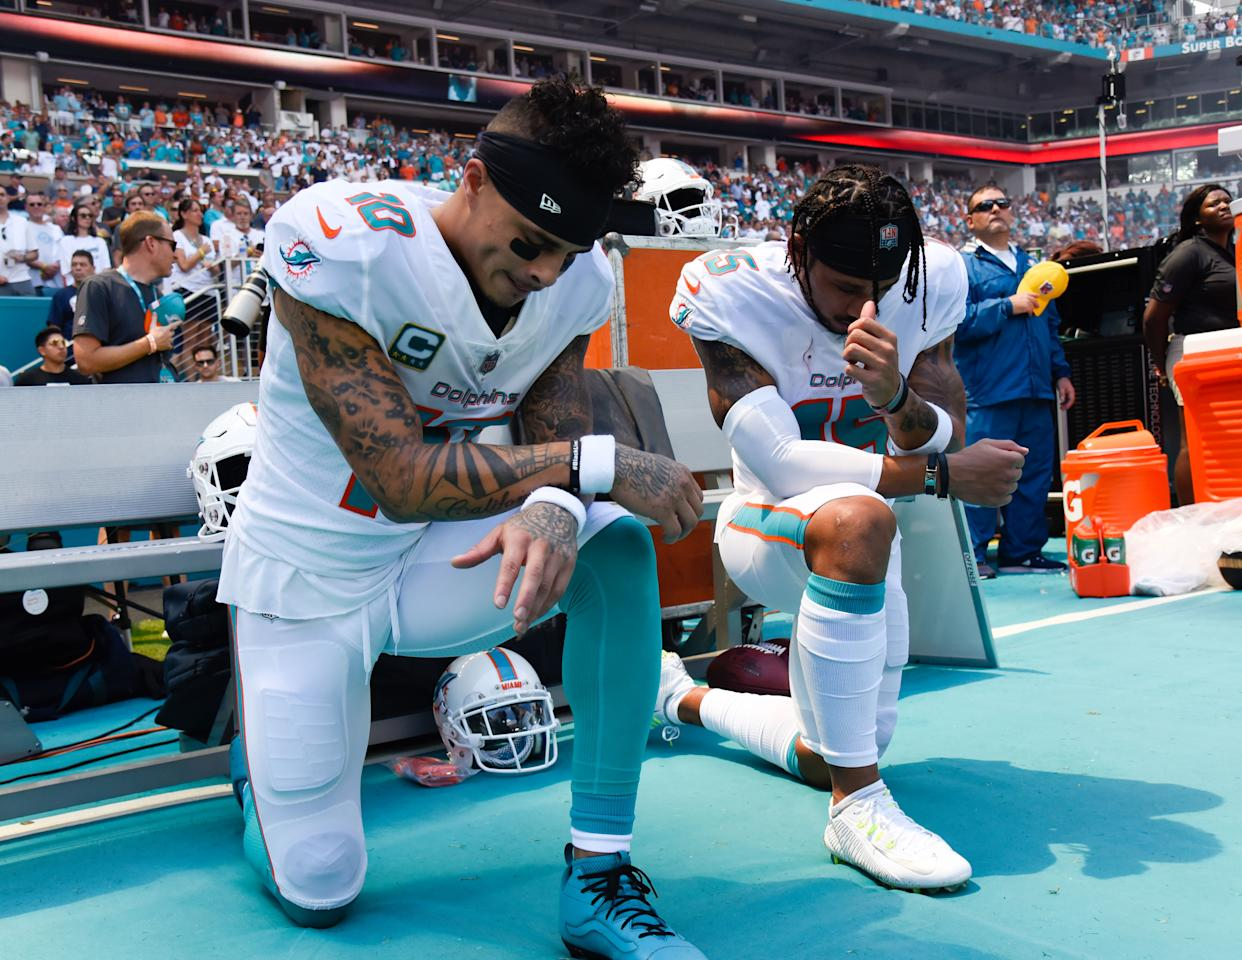 <p>Miami Dolphins Wide Receiver Kenny Stills (10), left, and Miami Dolphins Wide Receiver Albert Wilson (15) take a knee during the playing of the National Anthem prior to the start of the Miami Dolphins and Tennessee Titans game on Sunday, September 9, 2018 at Hard Rock Stadium in Miami Gardens, Fla. (Photo by Michele Sandberg/Icon Sportswire via Getty Images) </p>